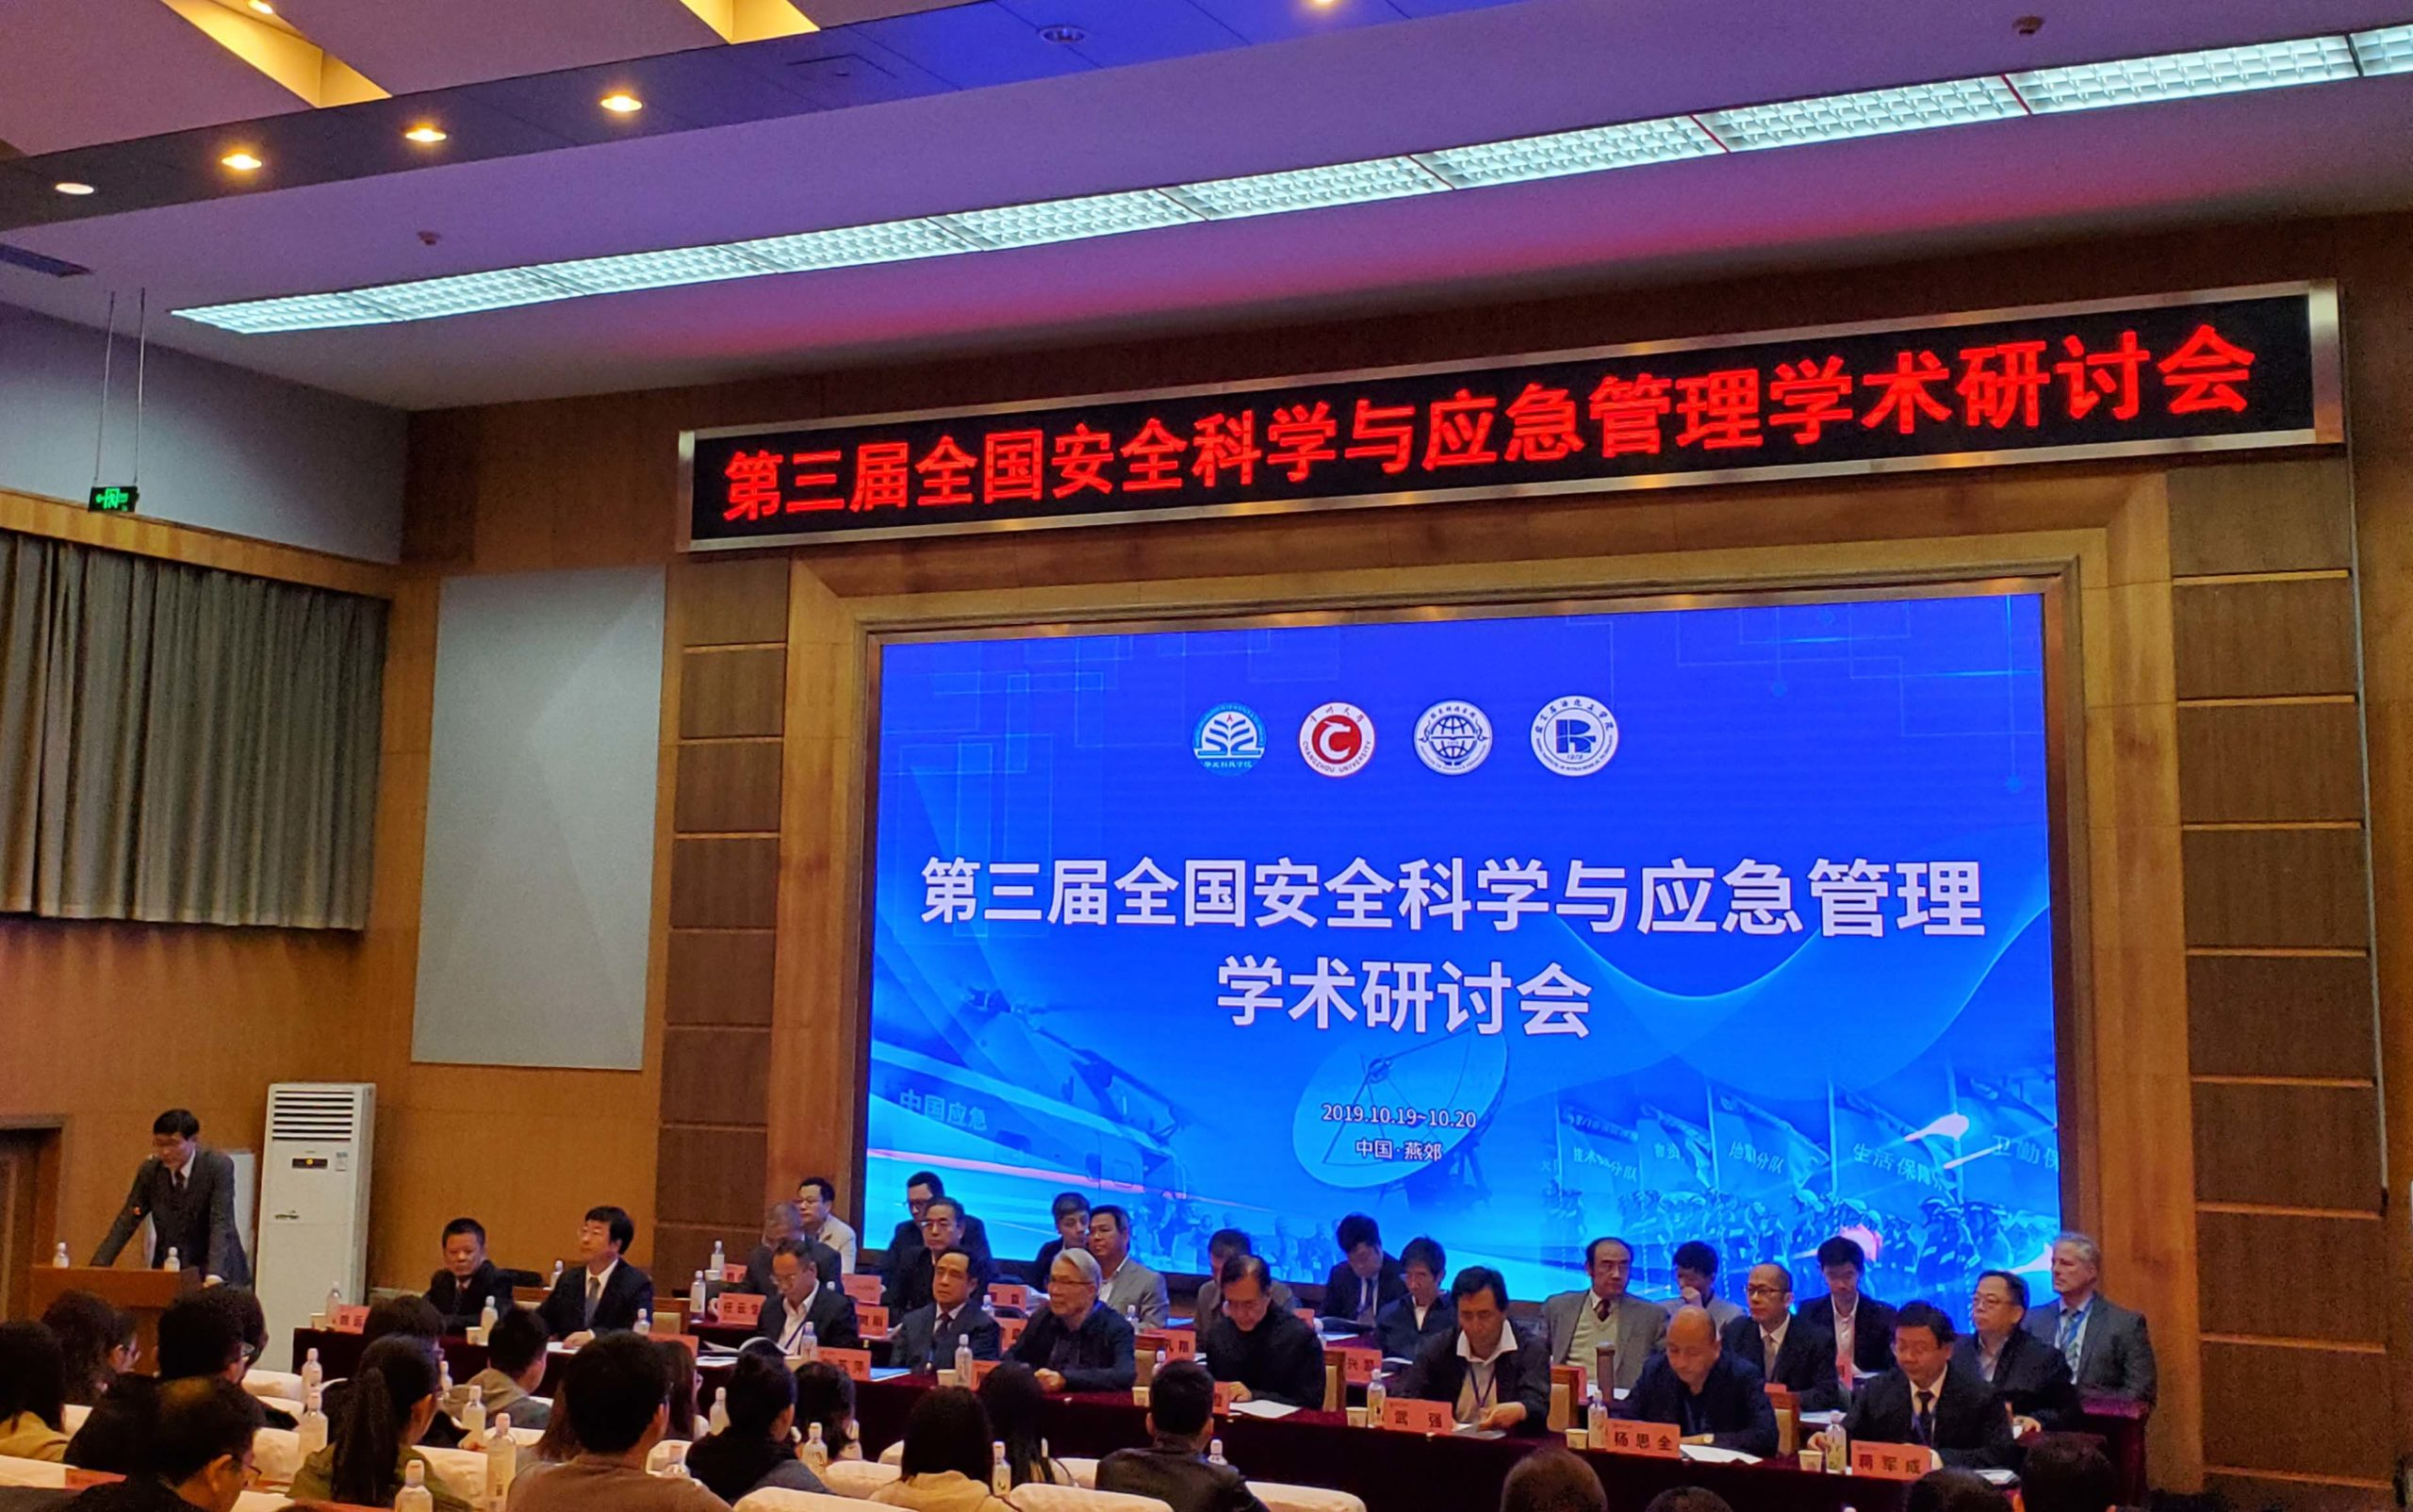 Gexcon Participated in the 3rd National Symposium on Safety Science and Emergency Management in China